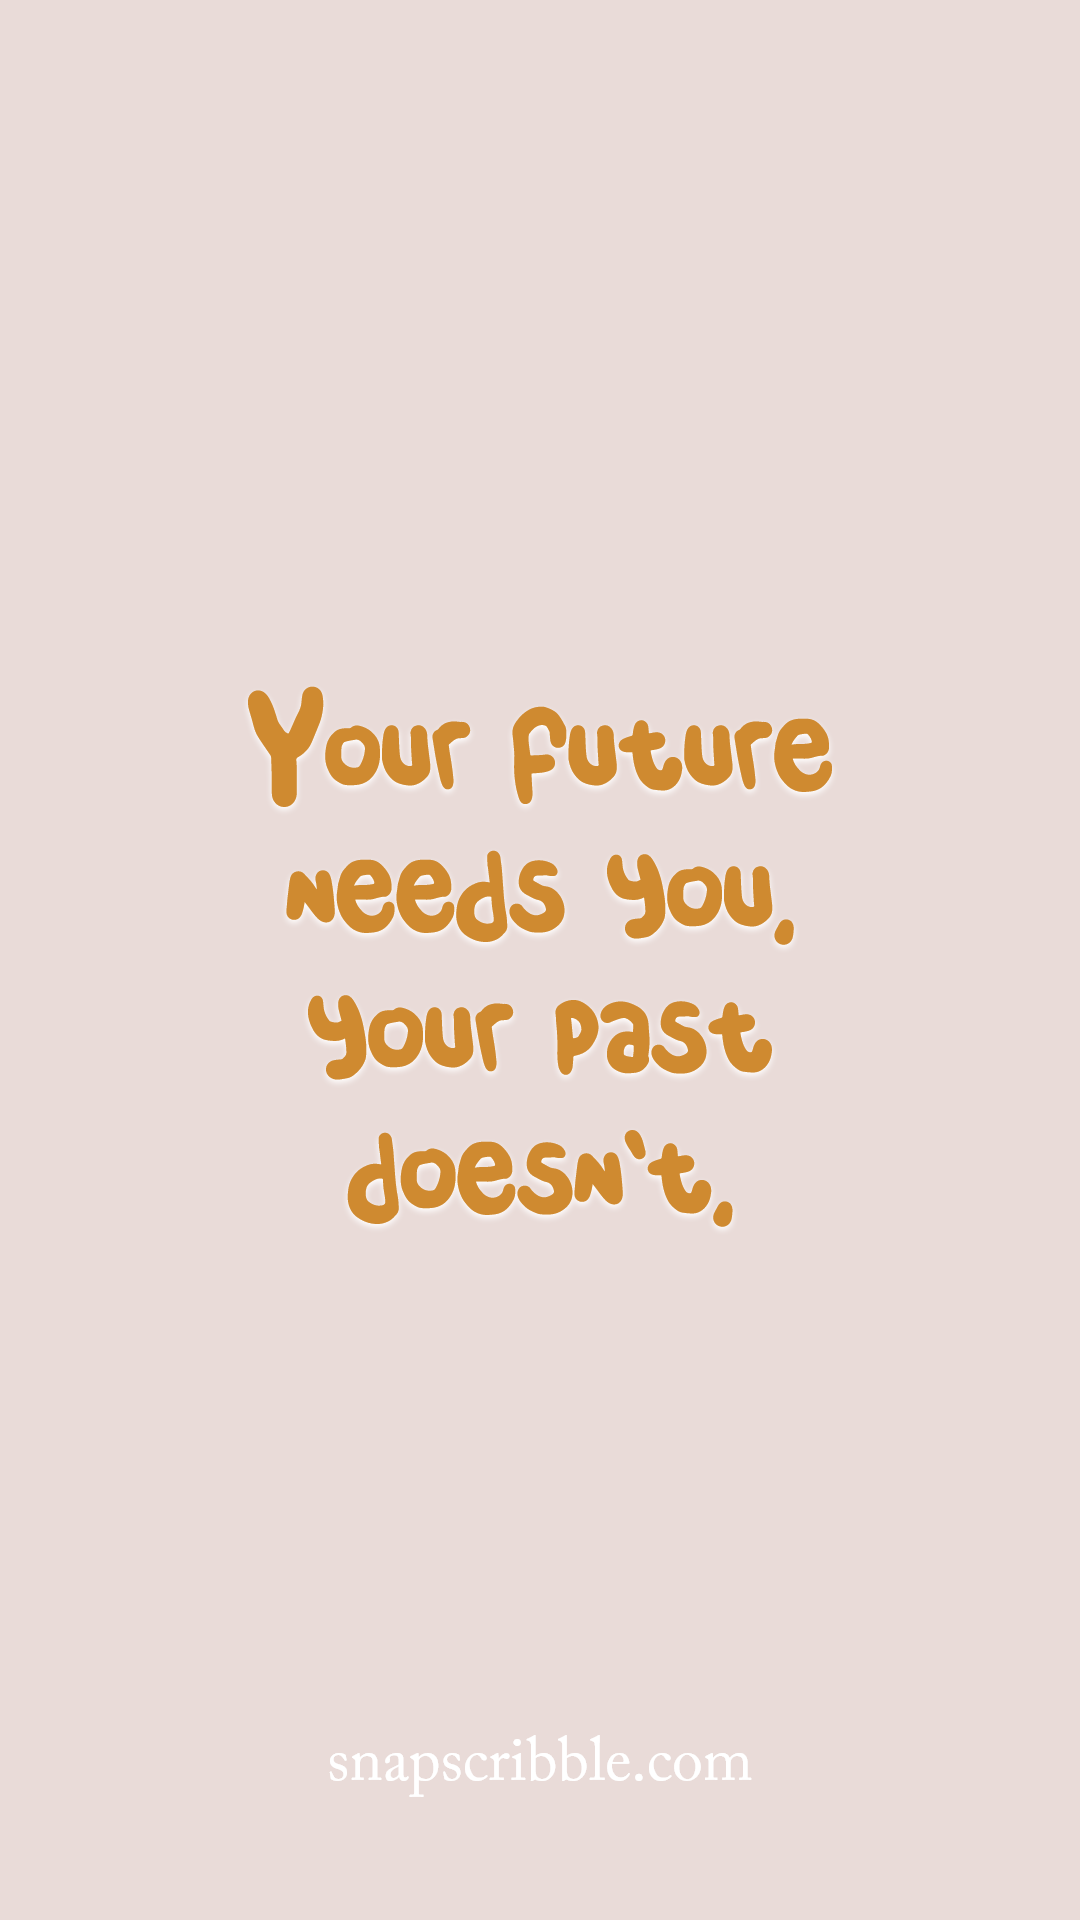 35 Free And Fun Iphone Wallpapers To Liven Up Your Life Words Inspirational Quotes Cute Quotes